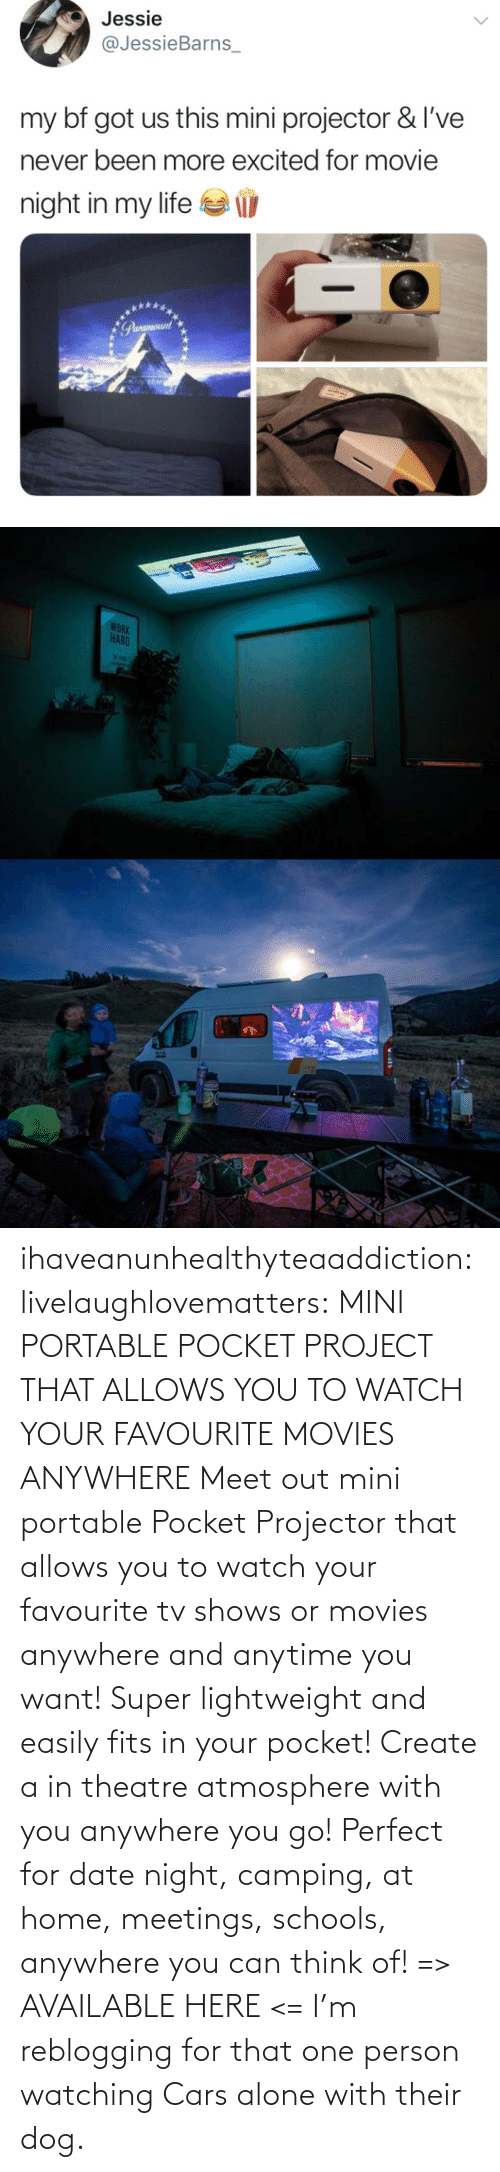 /tv/ : ihaveanunhealthyteaaddiction: livelaughlovematters:  MINI PORTABLE POCKET PROJECT THAT ALLOWS YOU TO WATCH YOUR FAVOURITE MOVIES ANYWHERE Meet out mini portable Pocket Projector that allows you to watch your favourite tv shows or movies anywhere and anytime you want! Super lightweight and easily fits in your pocket! Create a in theatre atmosphere with you anywhere you go! Perfect for date night, camping, at home, meetings, schools, anywhere you can think of! => AVAILABLE HERE <=    I'm reblogging for that one person watching Cars alone with their dog.